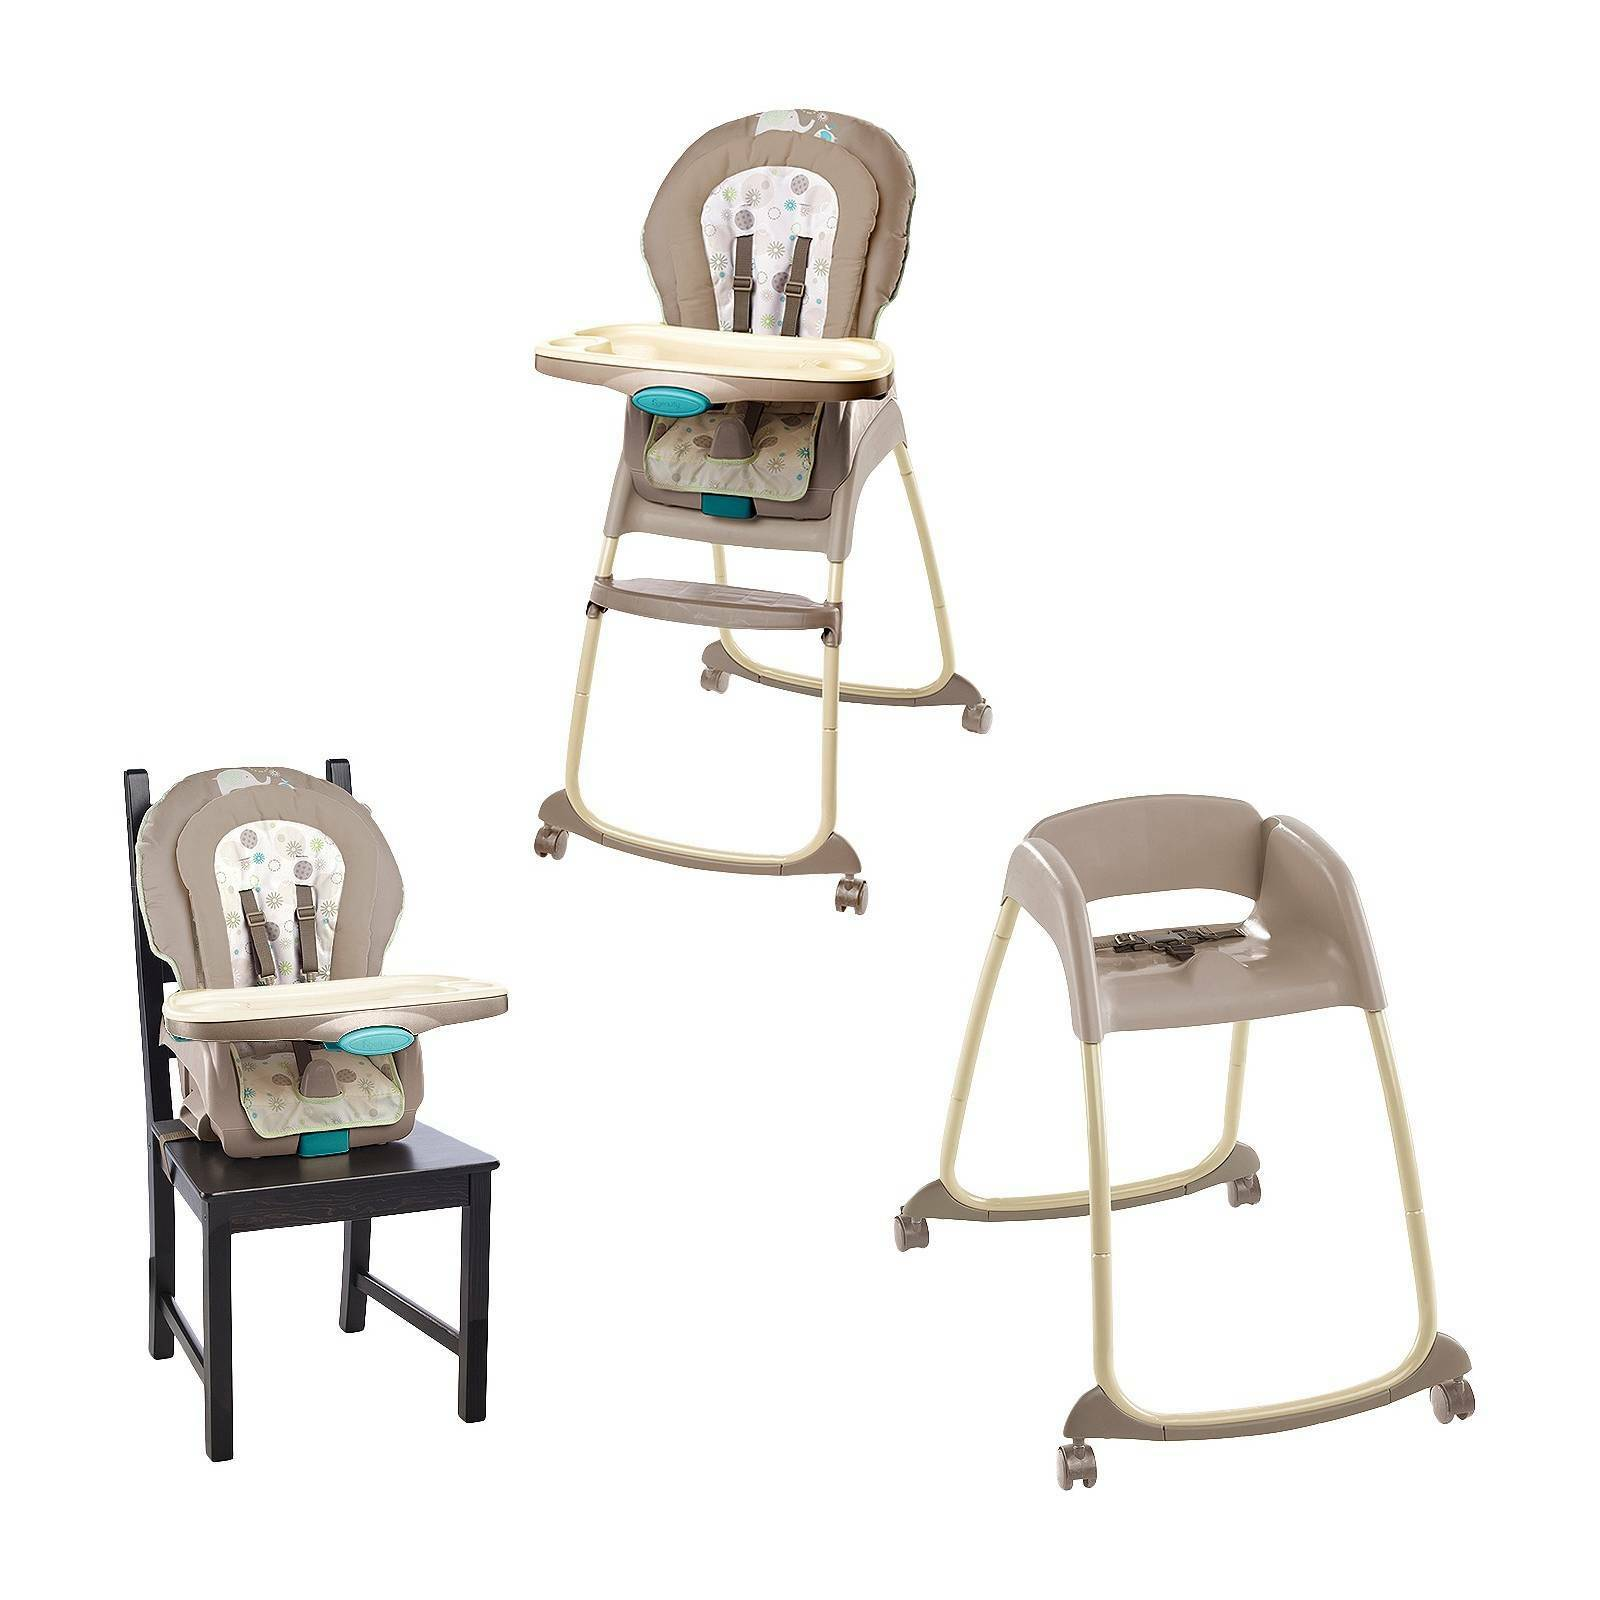 Ingenuity Trio 3 in 1 Deluxe High Chair Sahara Burst Infant